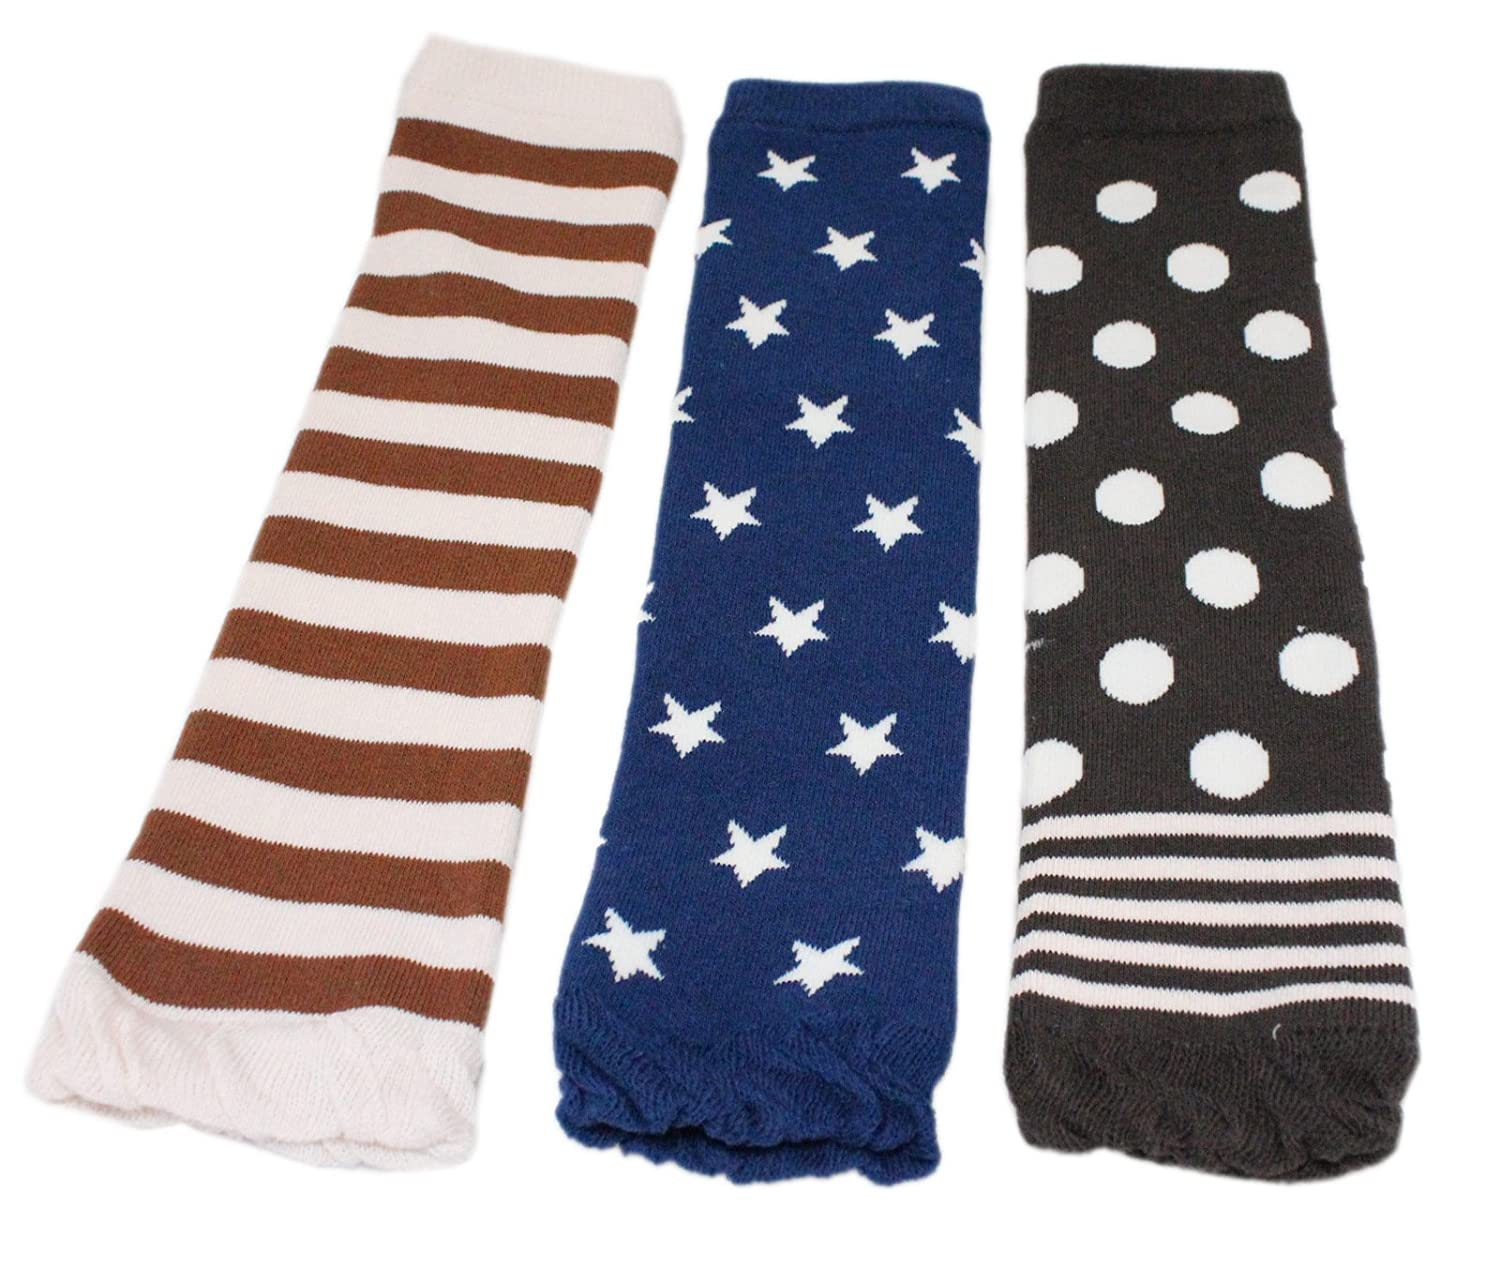 Baby Boys Girls Winter Thick Leg Warmer 3 Pairs - Blue Stars Stripe Polka Dot